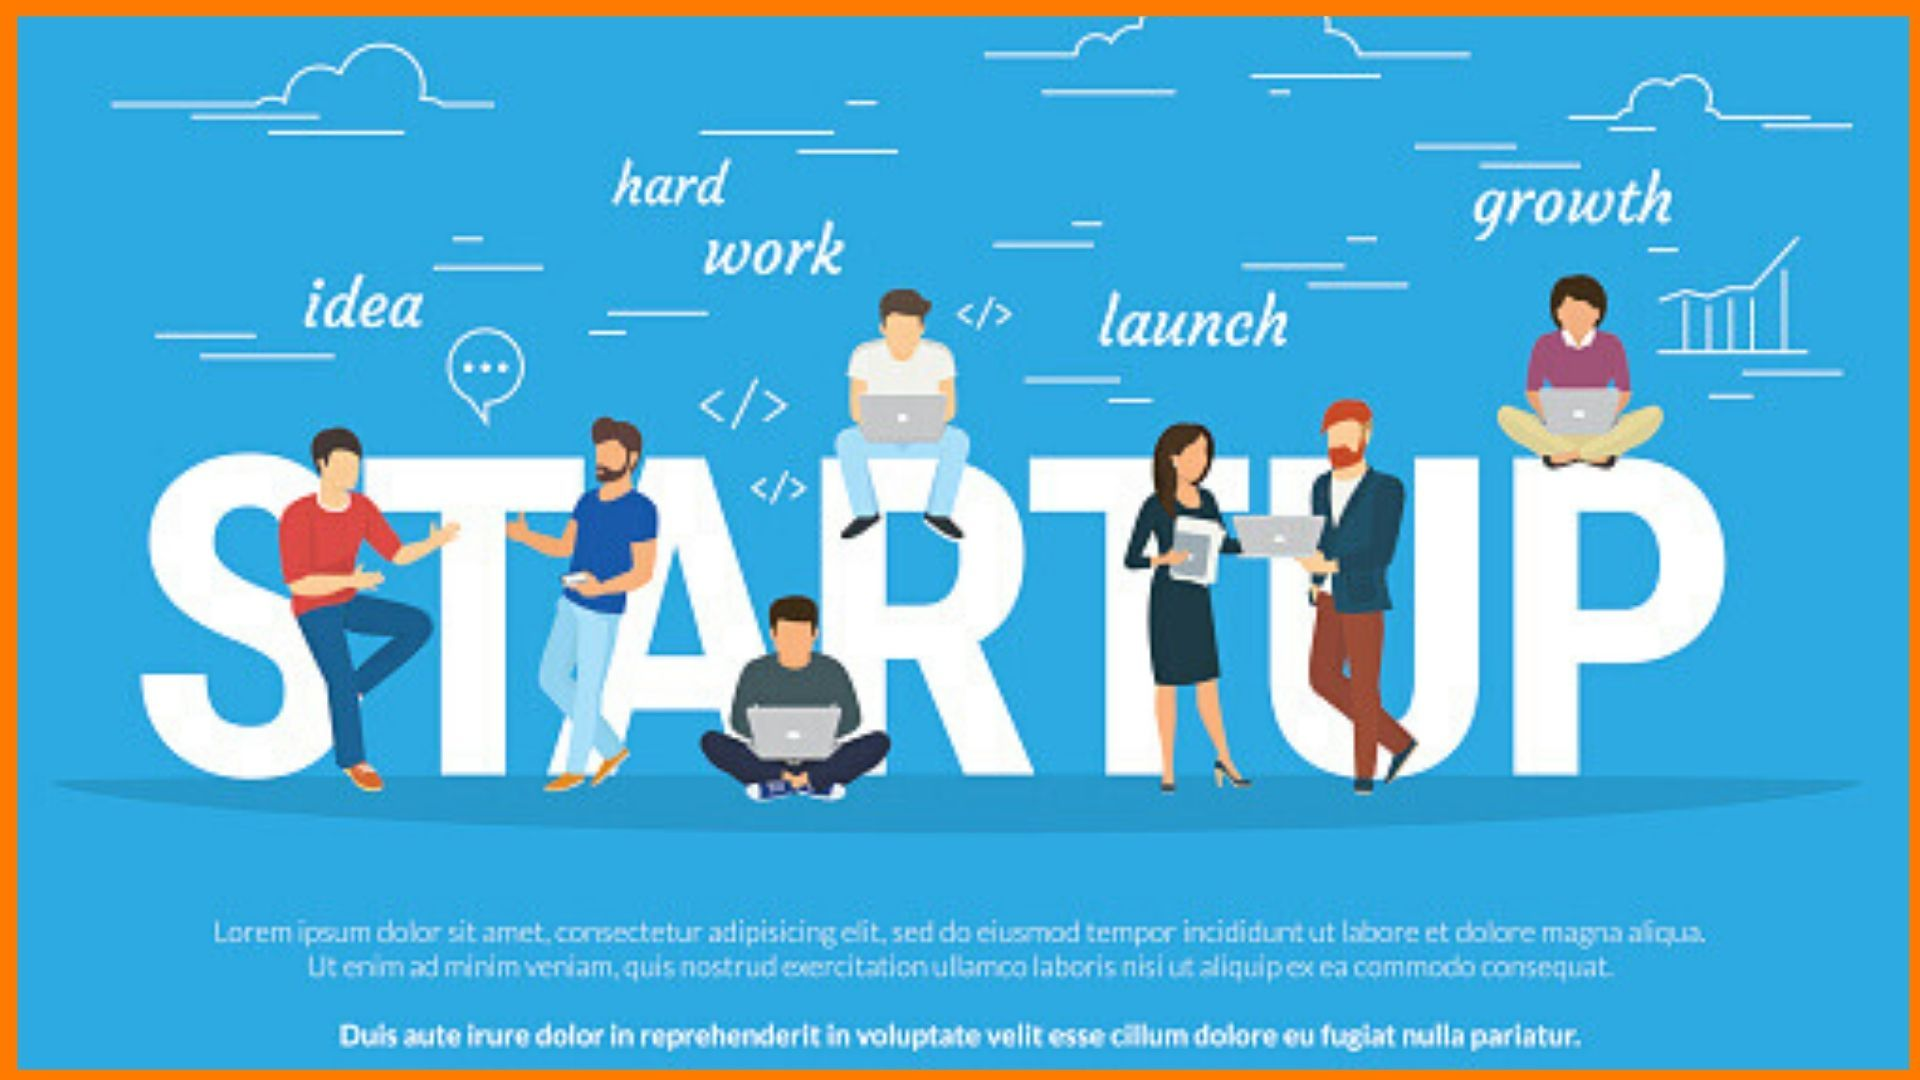 Truth about Startup